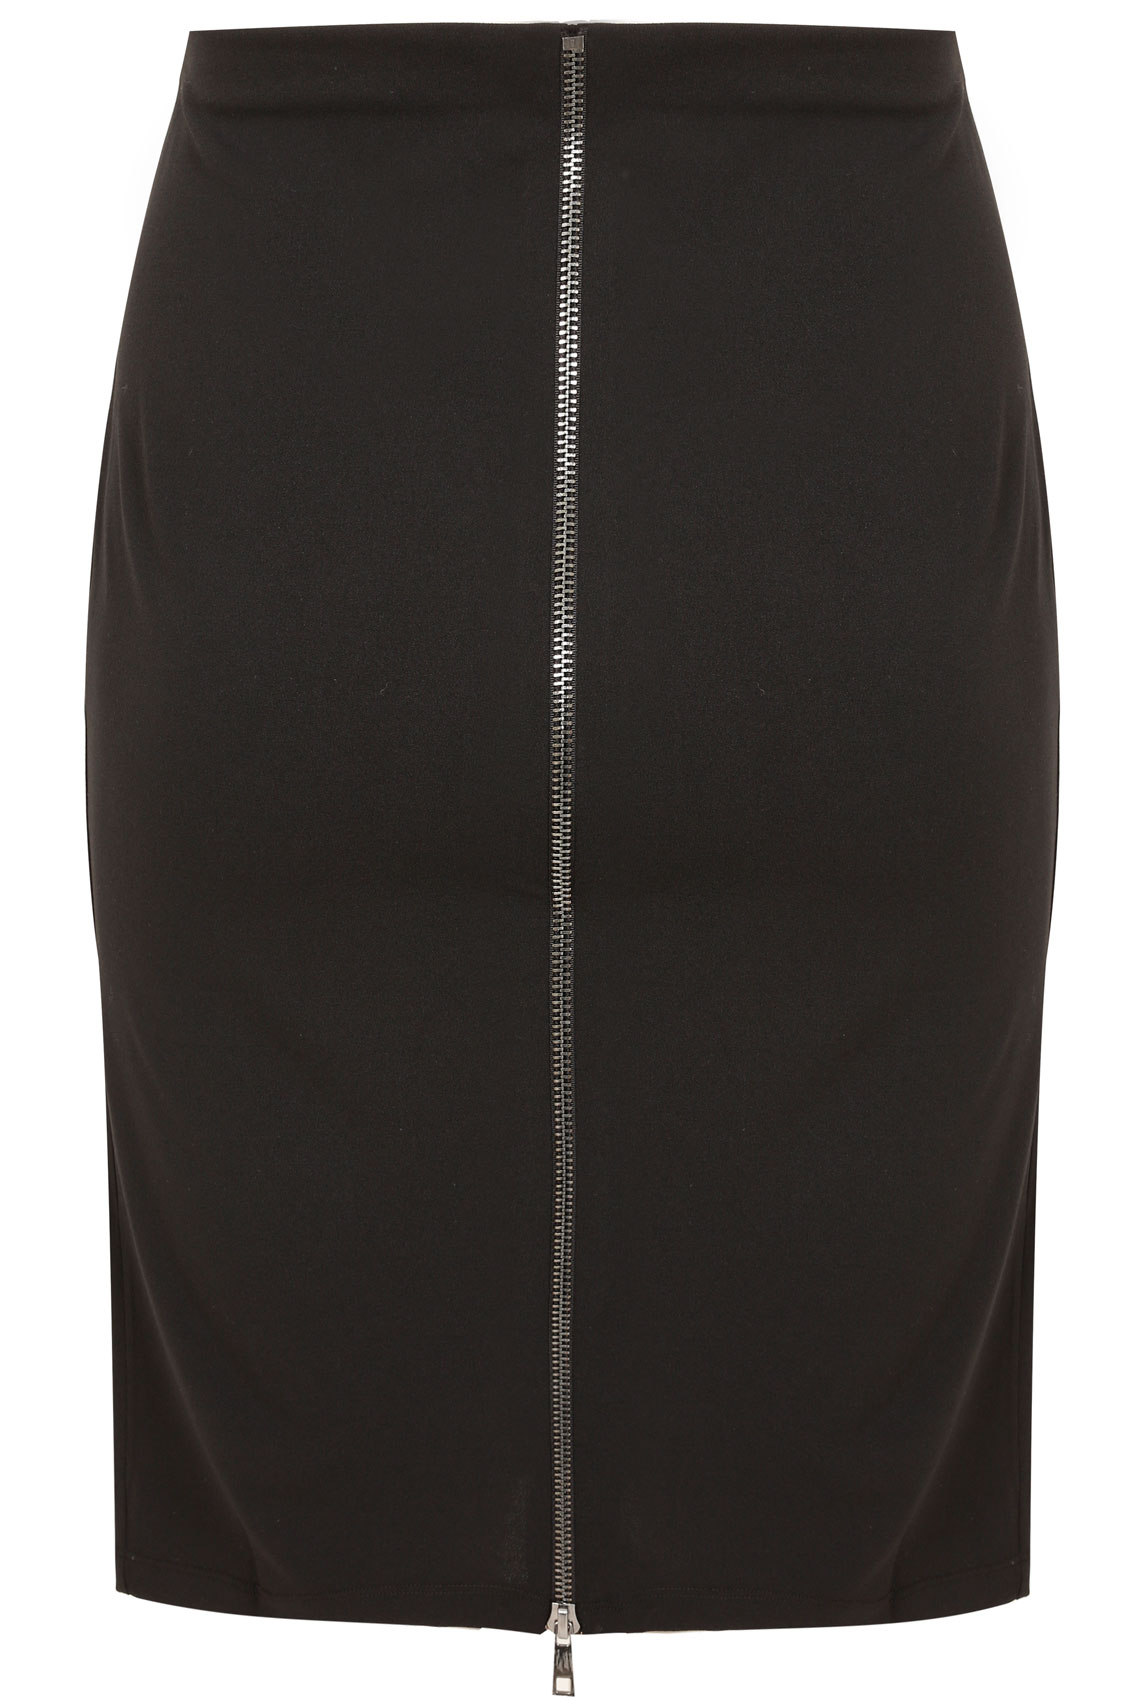 paprika black stretch pencil skirt with metallic zip back